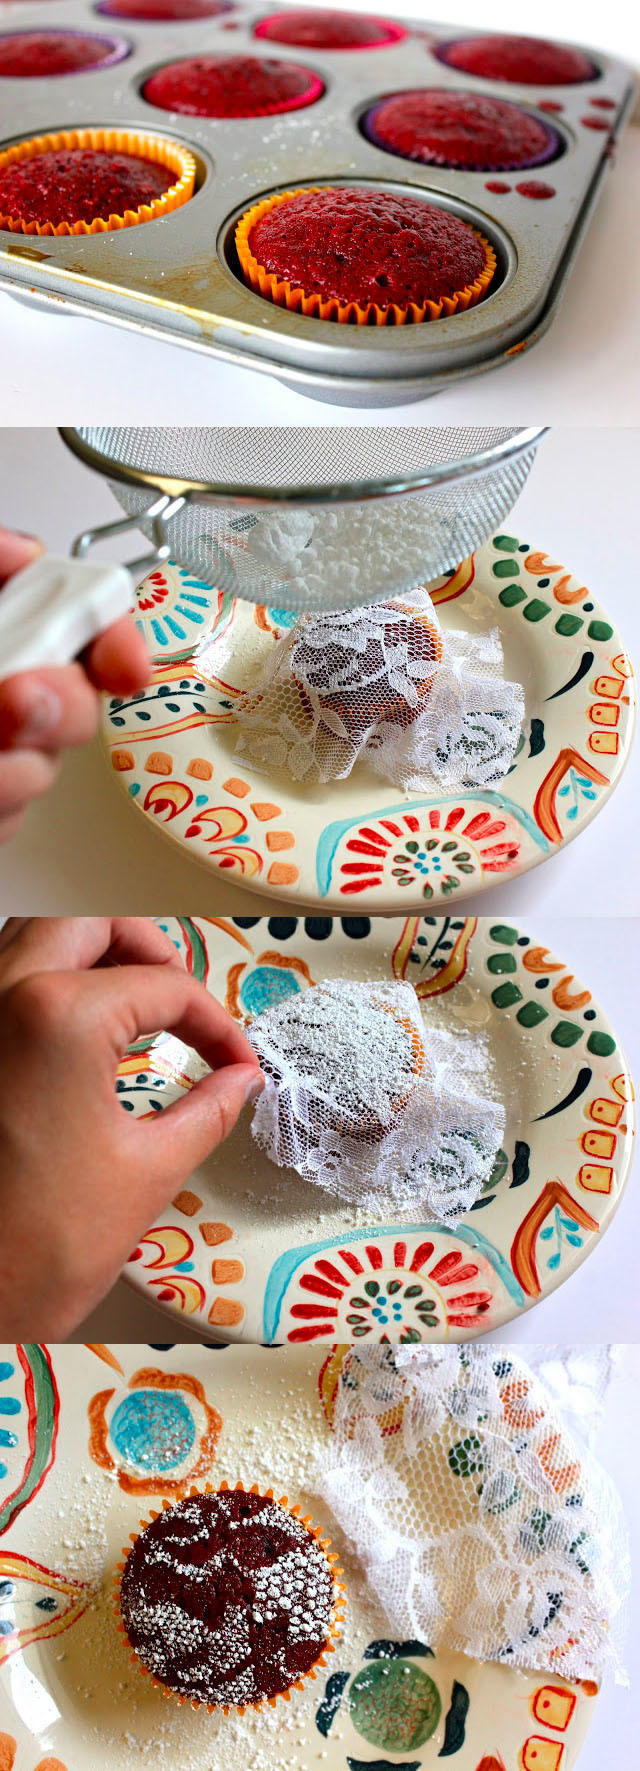 You can make one-of-a-kind gourmet pastries with lace and confectioners sugar.